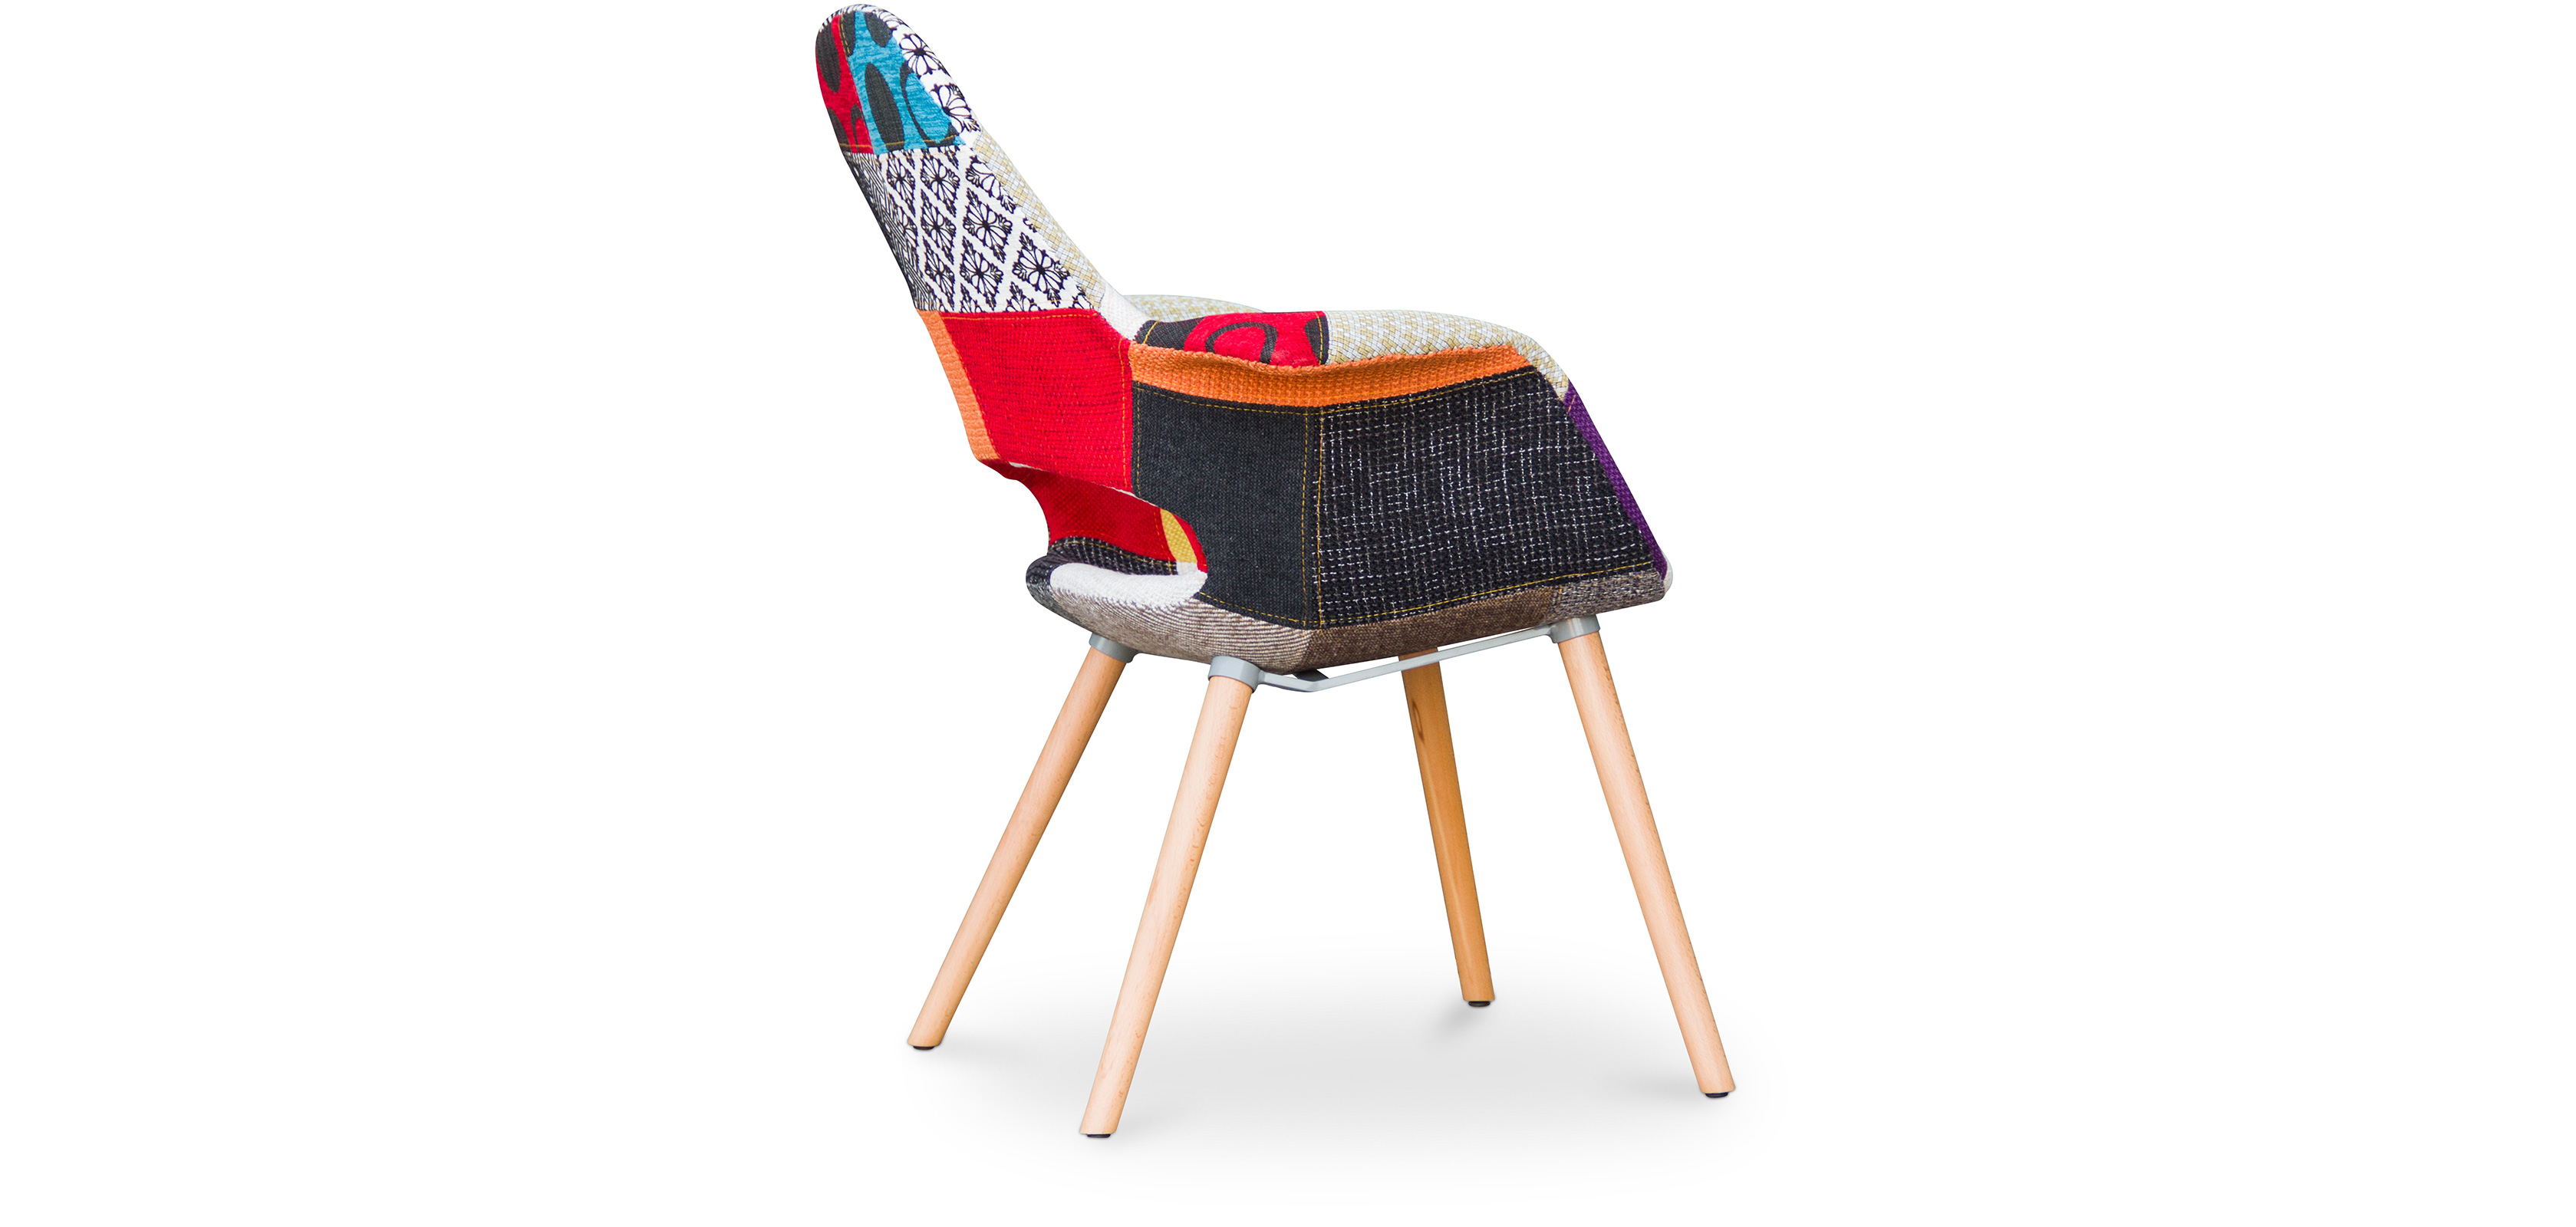 Sedia design scandinavo organic eero saarinen style for Sedia design patchwork